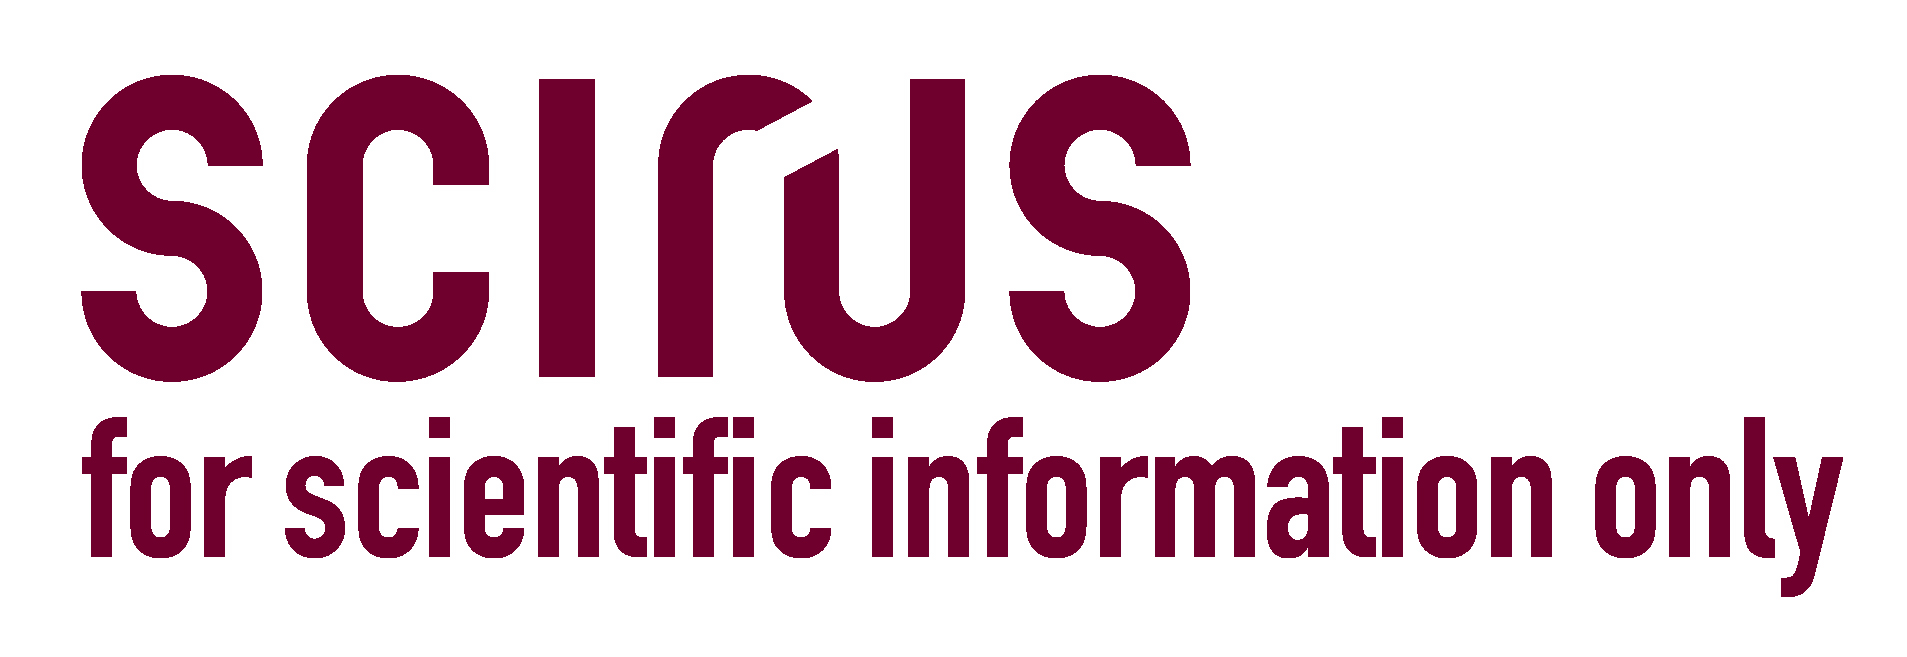 IARS' International Research Journal is now searched and listed by SCIRUS: For Scientific Information only.